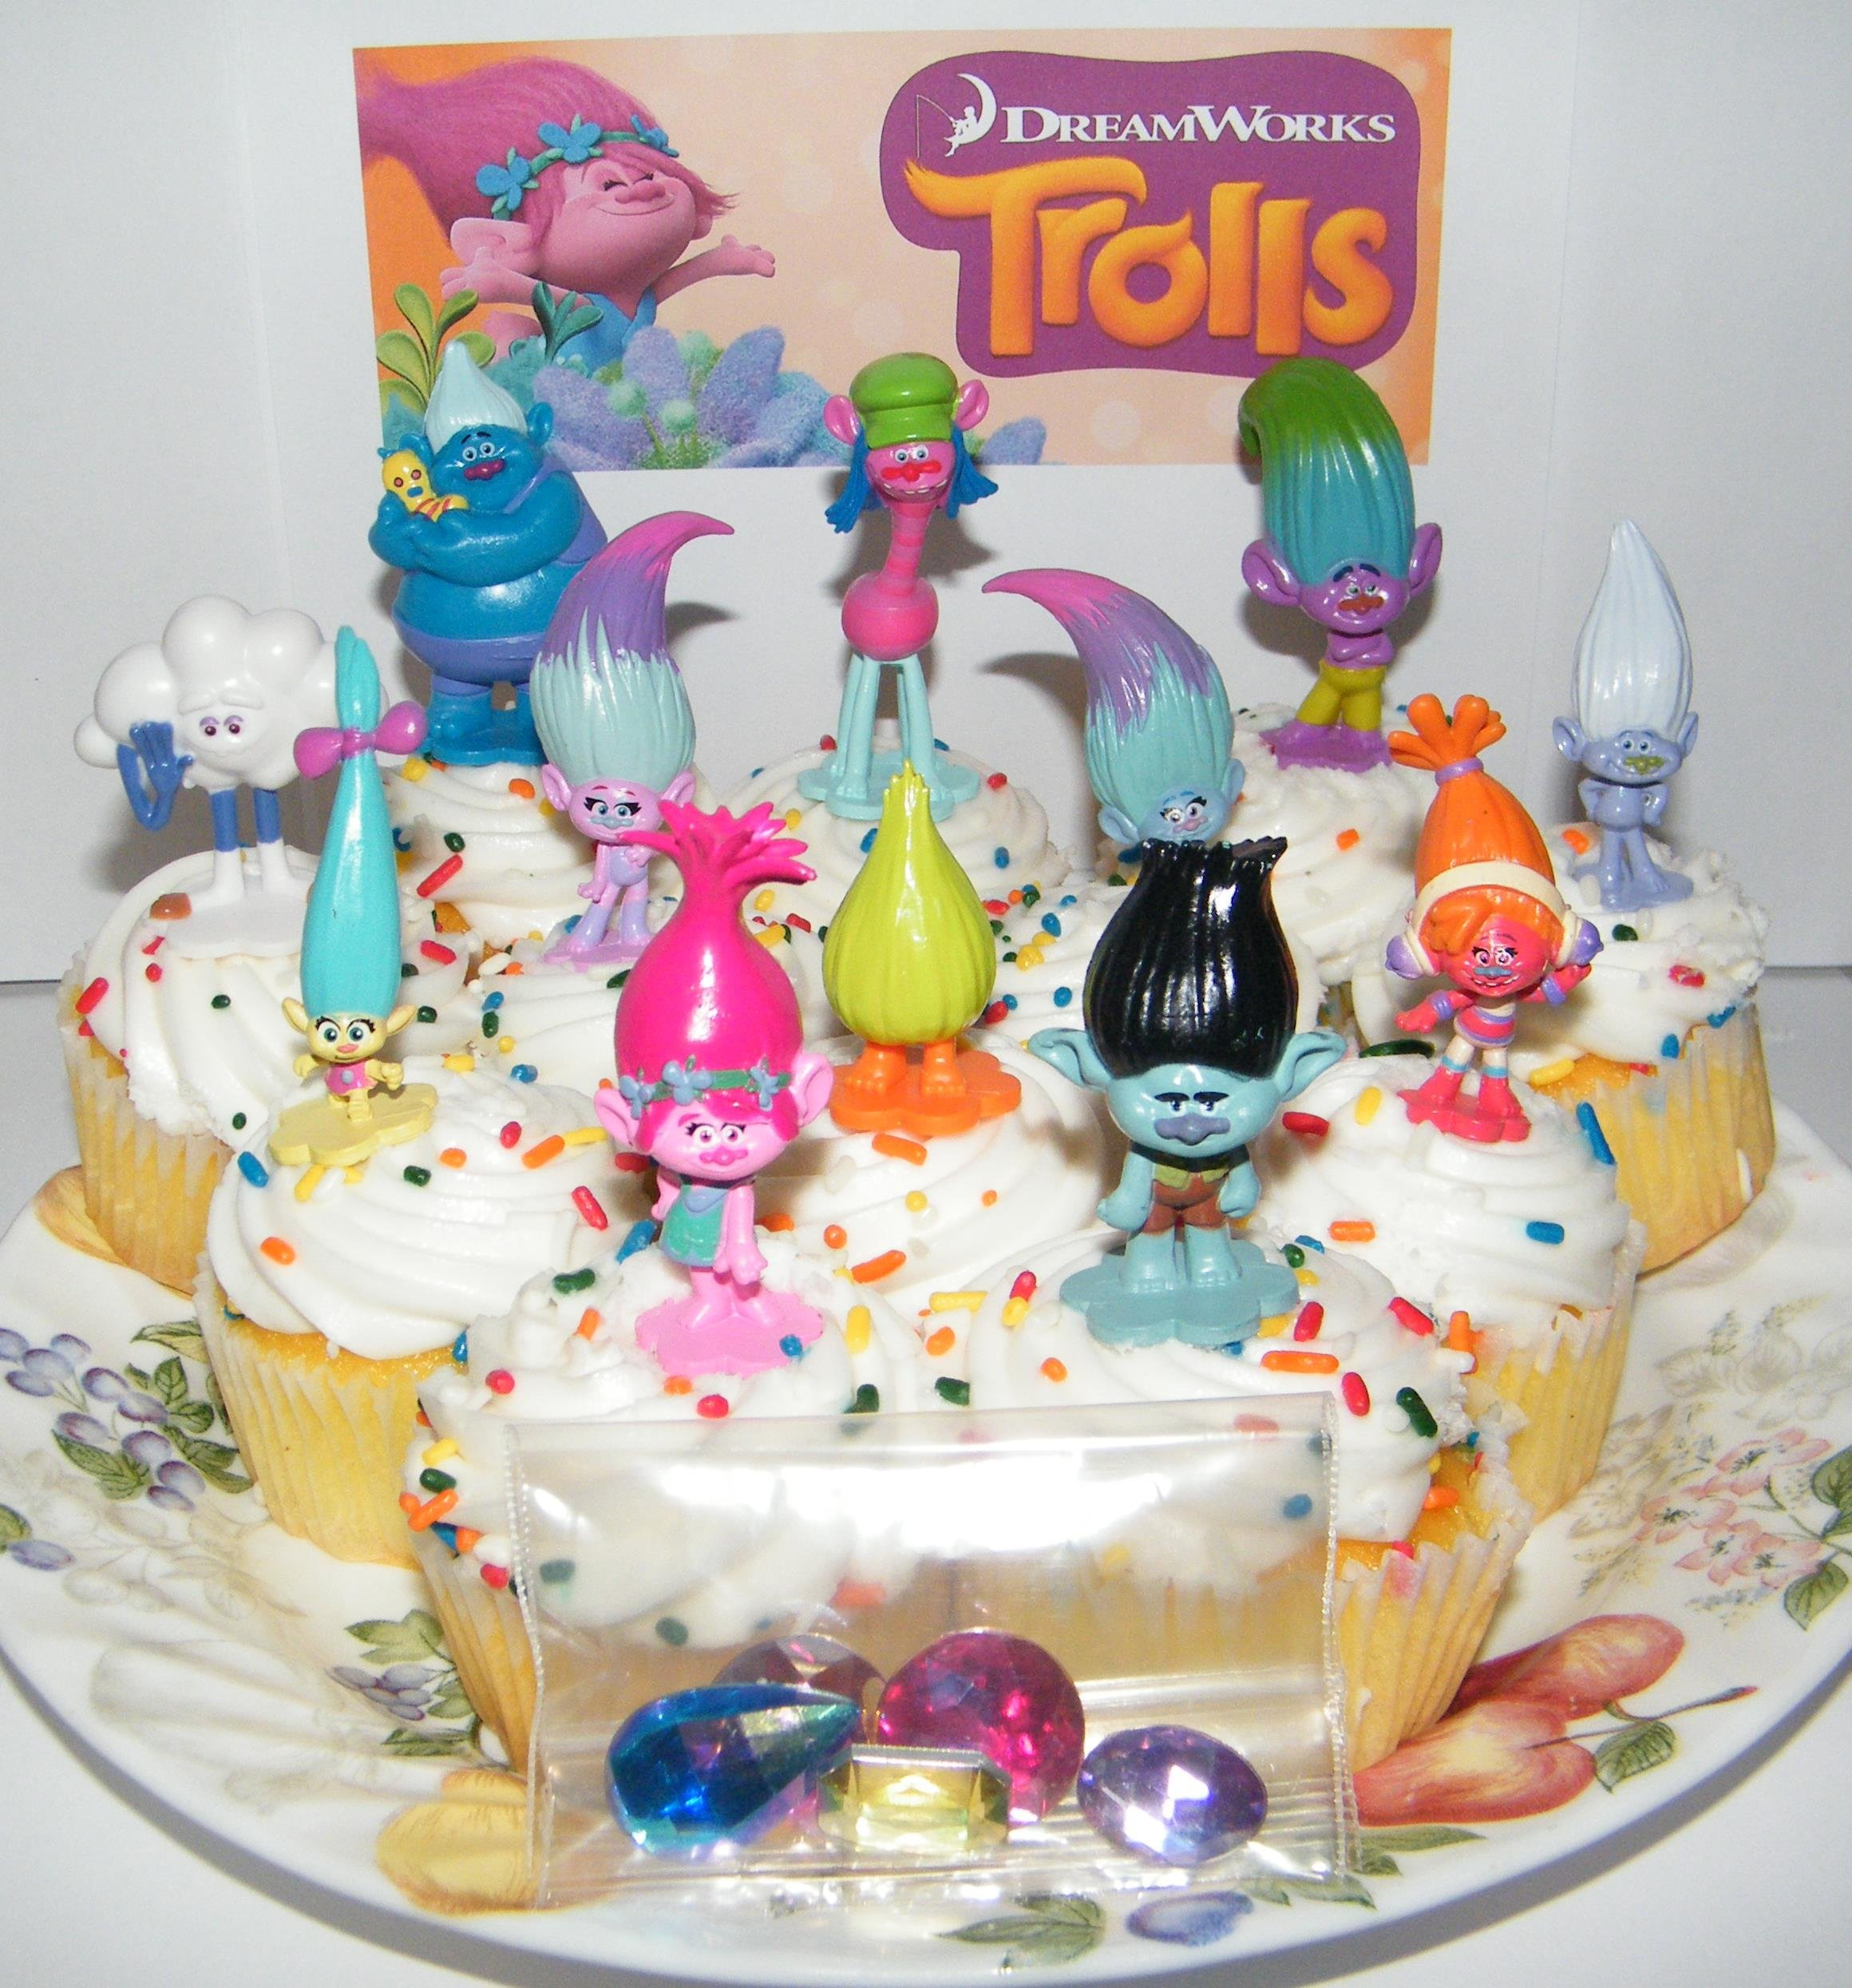 Dreamworks Trolls Movie Deluxe Party Favors Goody Bag Fillers Set of 17 with Figures and ''Treasure Troll'' Jewels Featuring Princess Poppy, Branch and Many More!